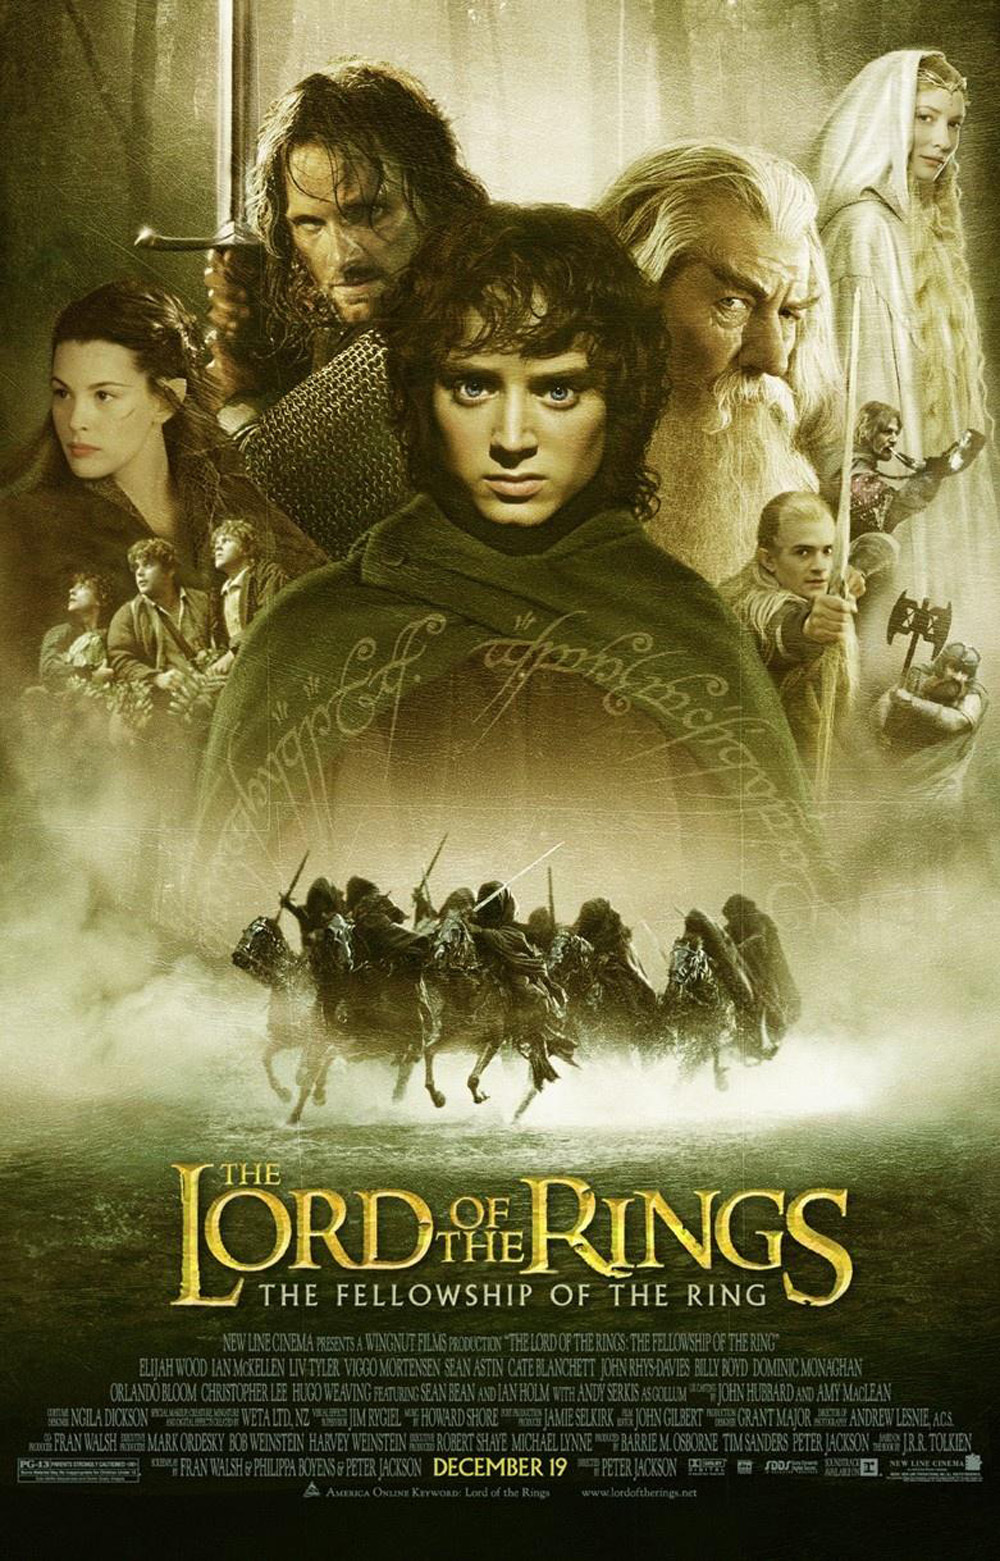 The Tagline: Lord of The Rings: A Retrospective